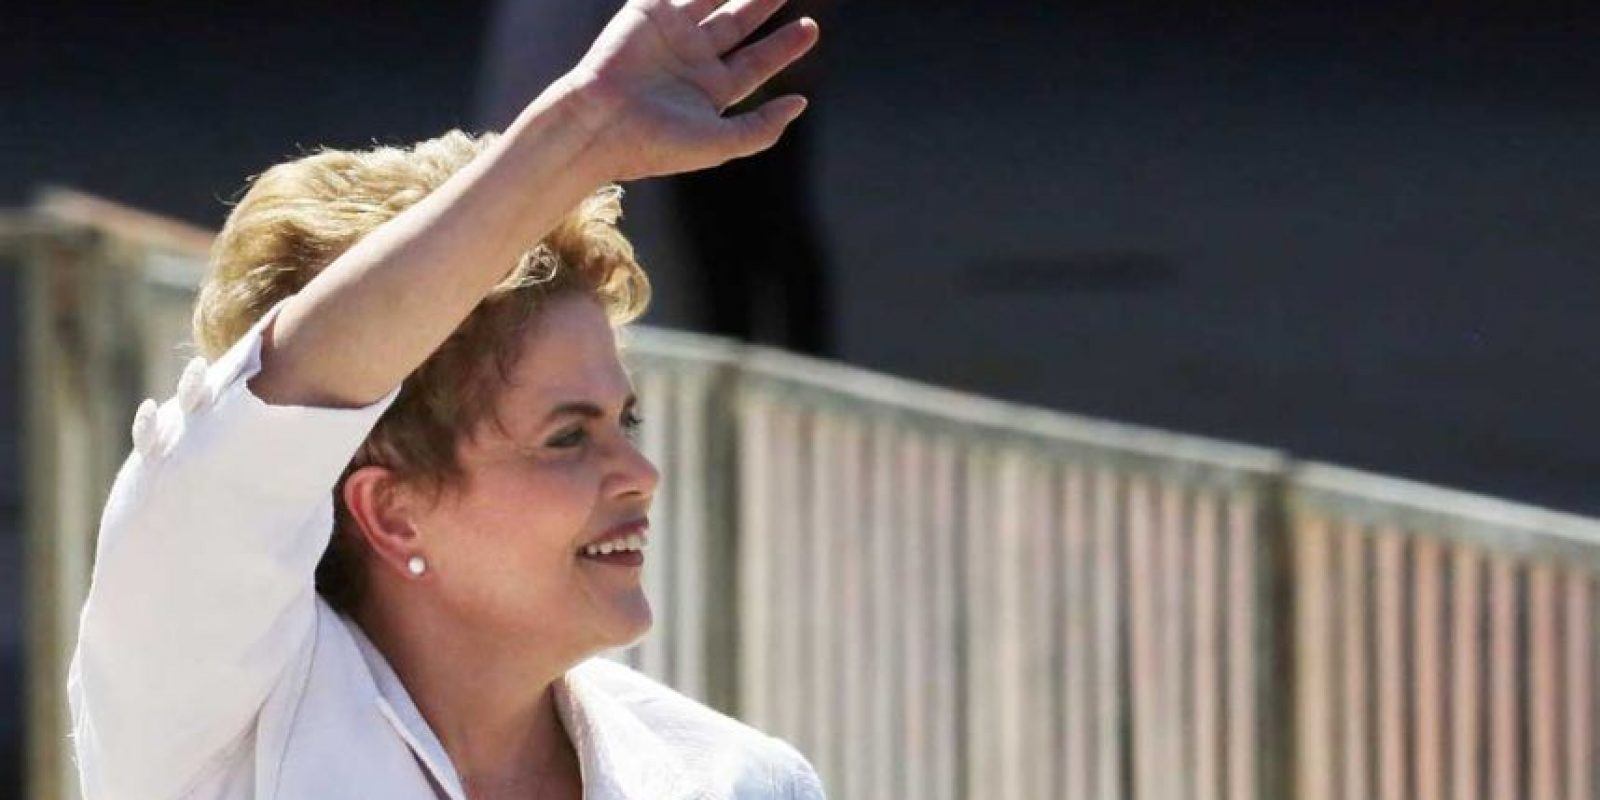 1. Destitución de Dilma Rouseff Foto: Getty Images